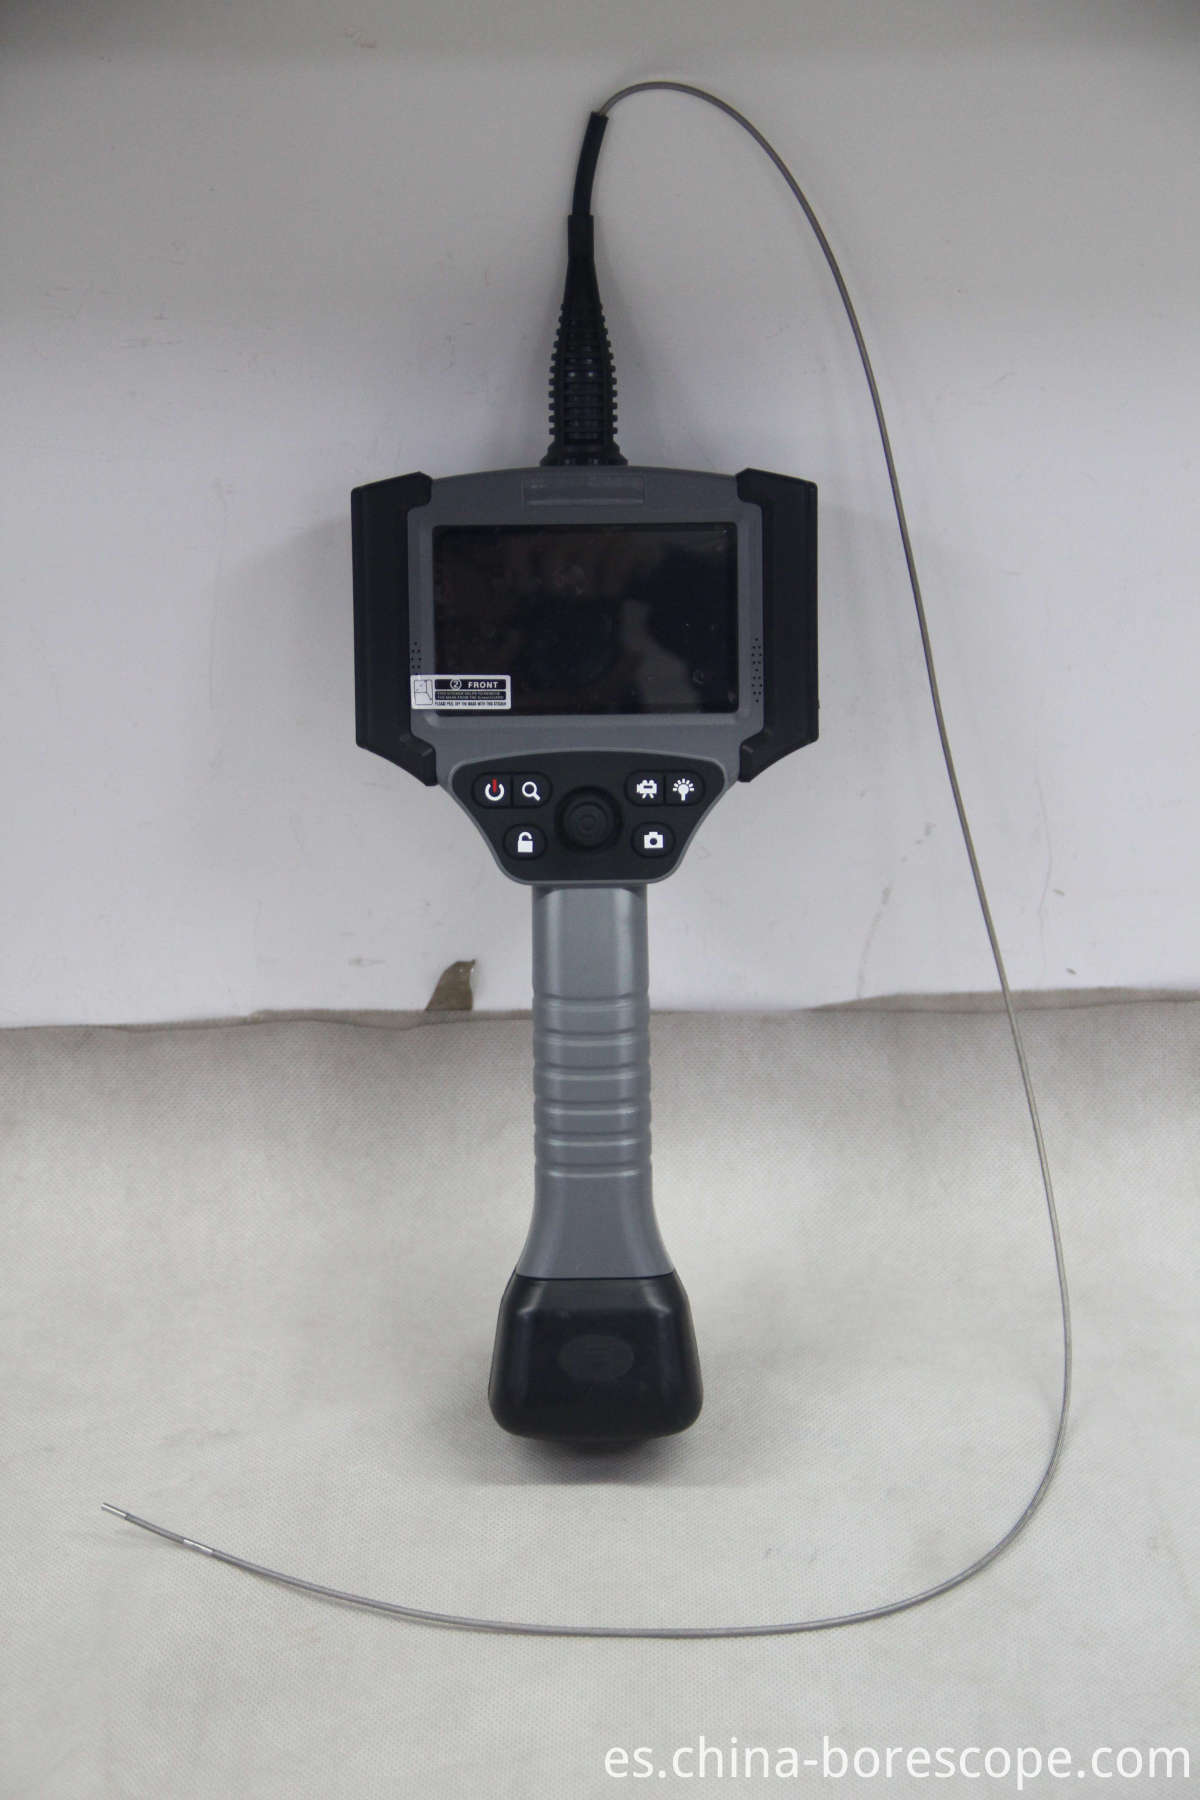 Heat exchanger industrial video borescope